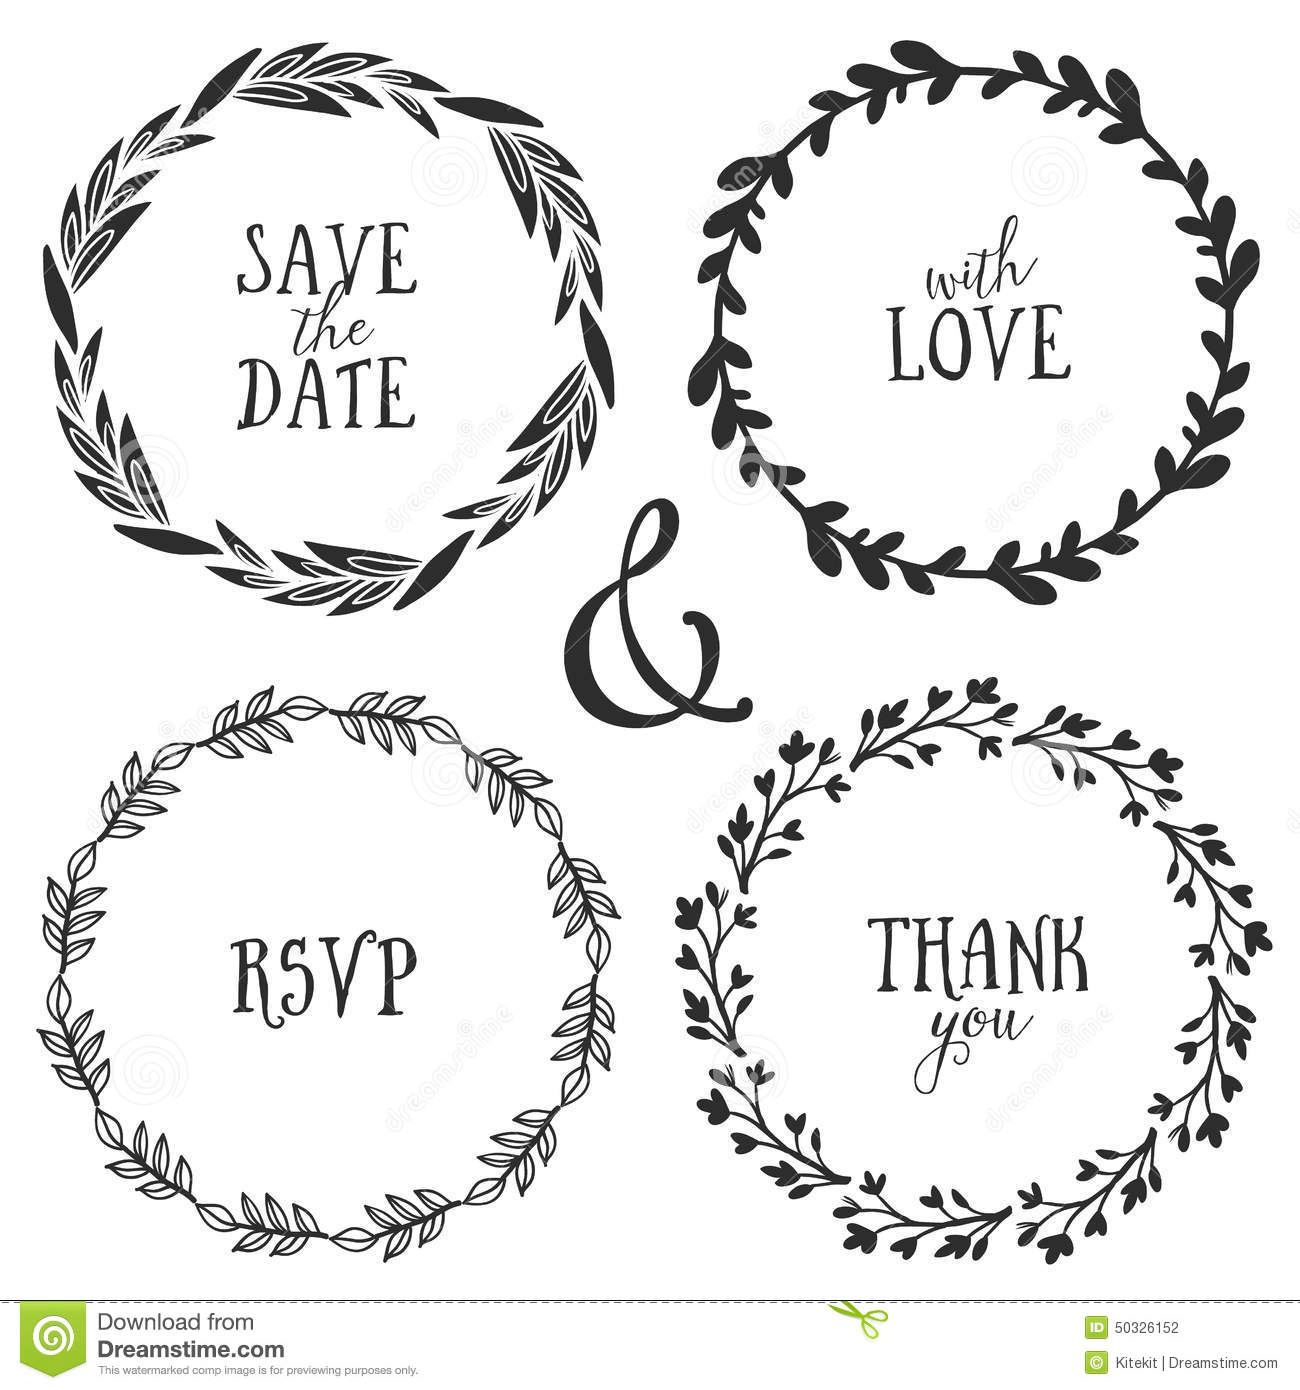 Vine wreath clipart jpg jpg transparent Vine wreath clipart jpg recolor - ClipartFest jpg transparent